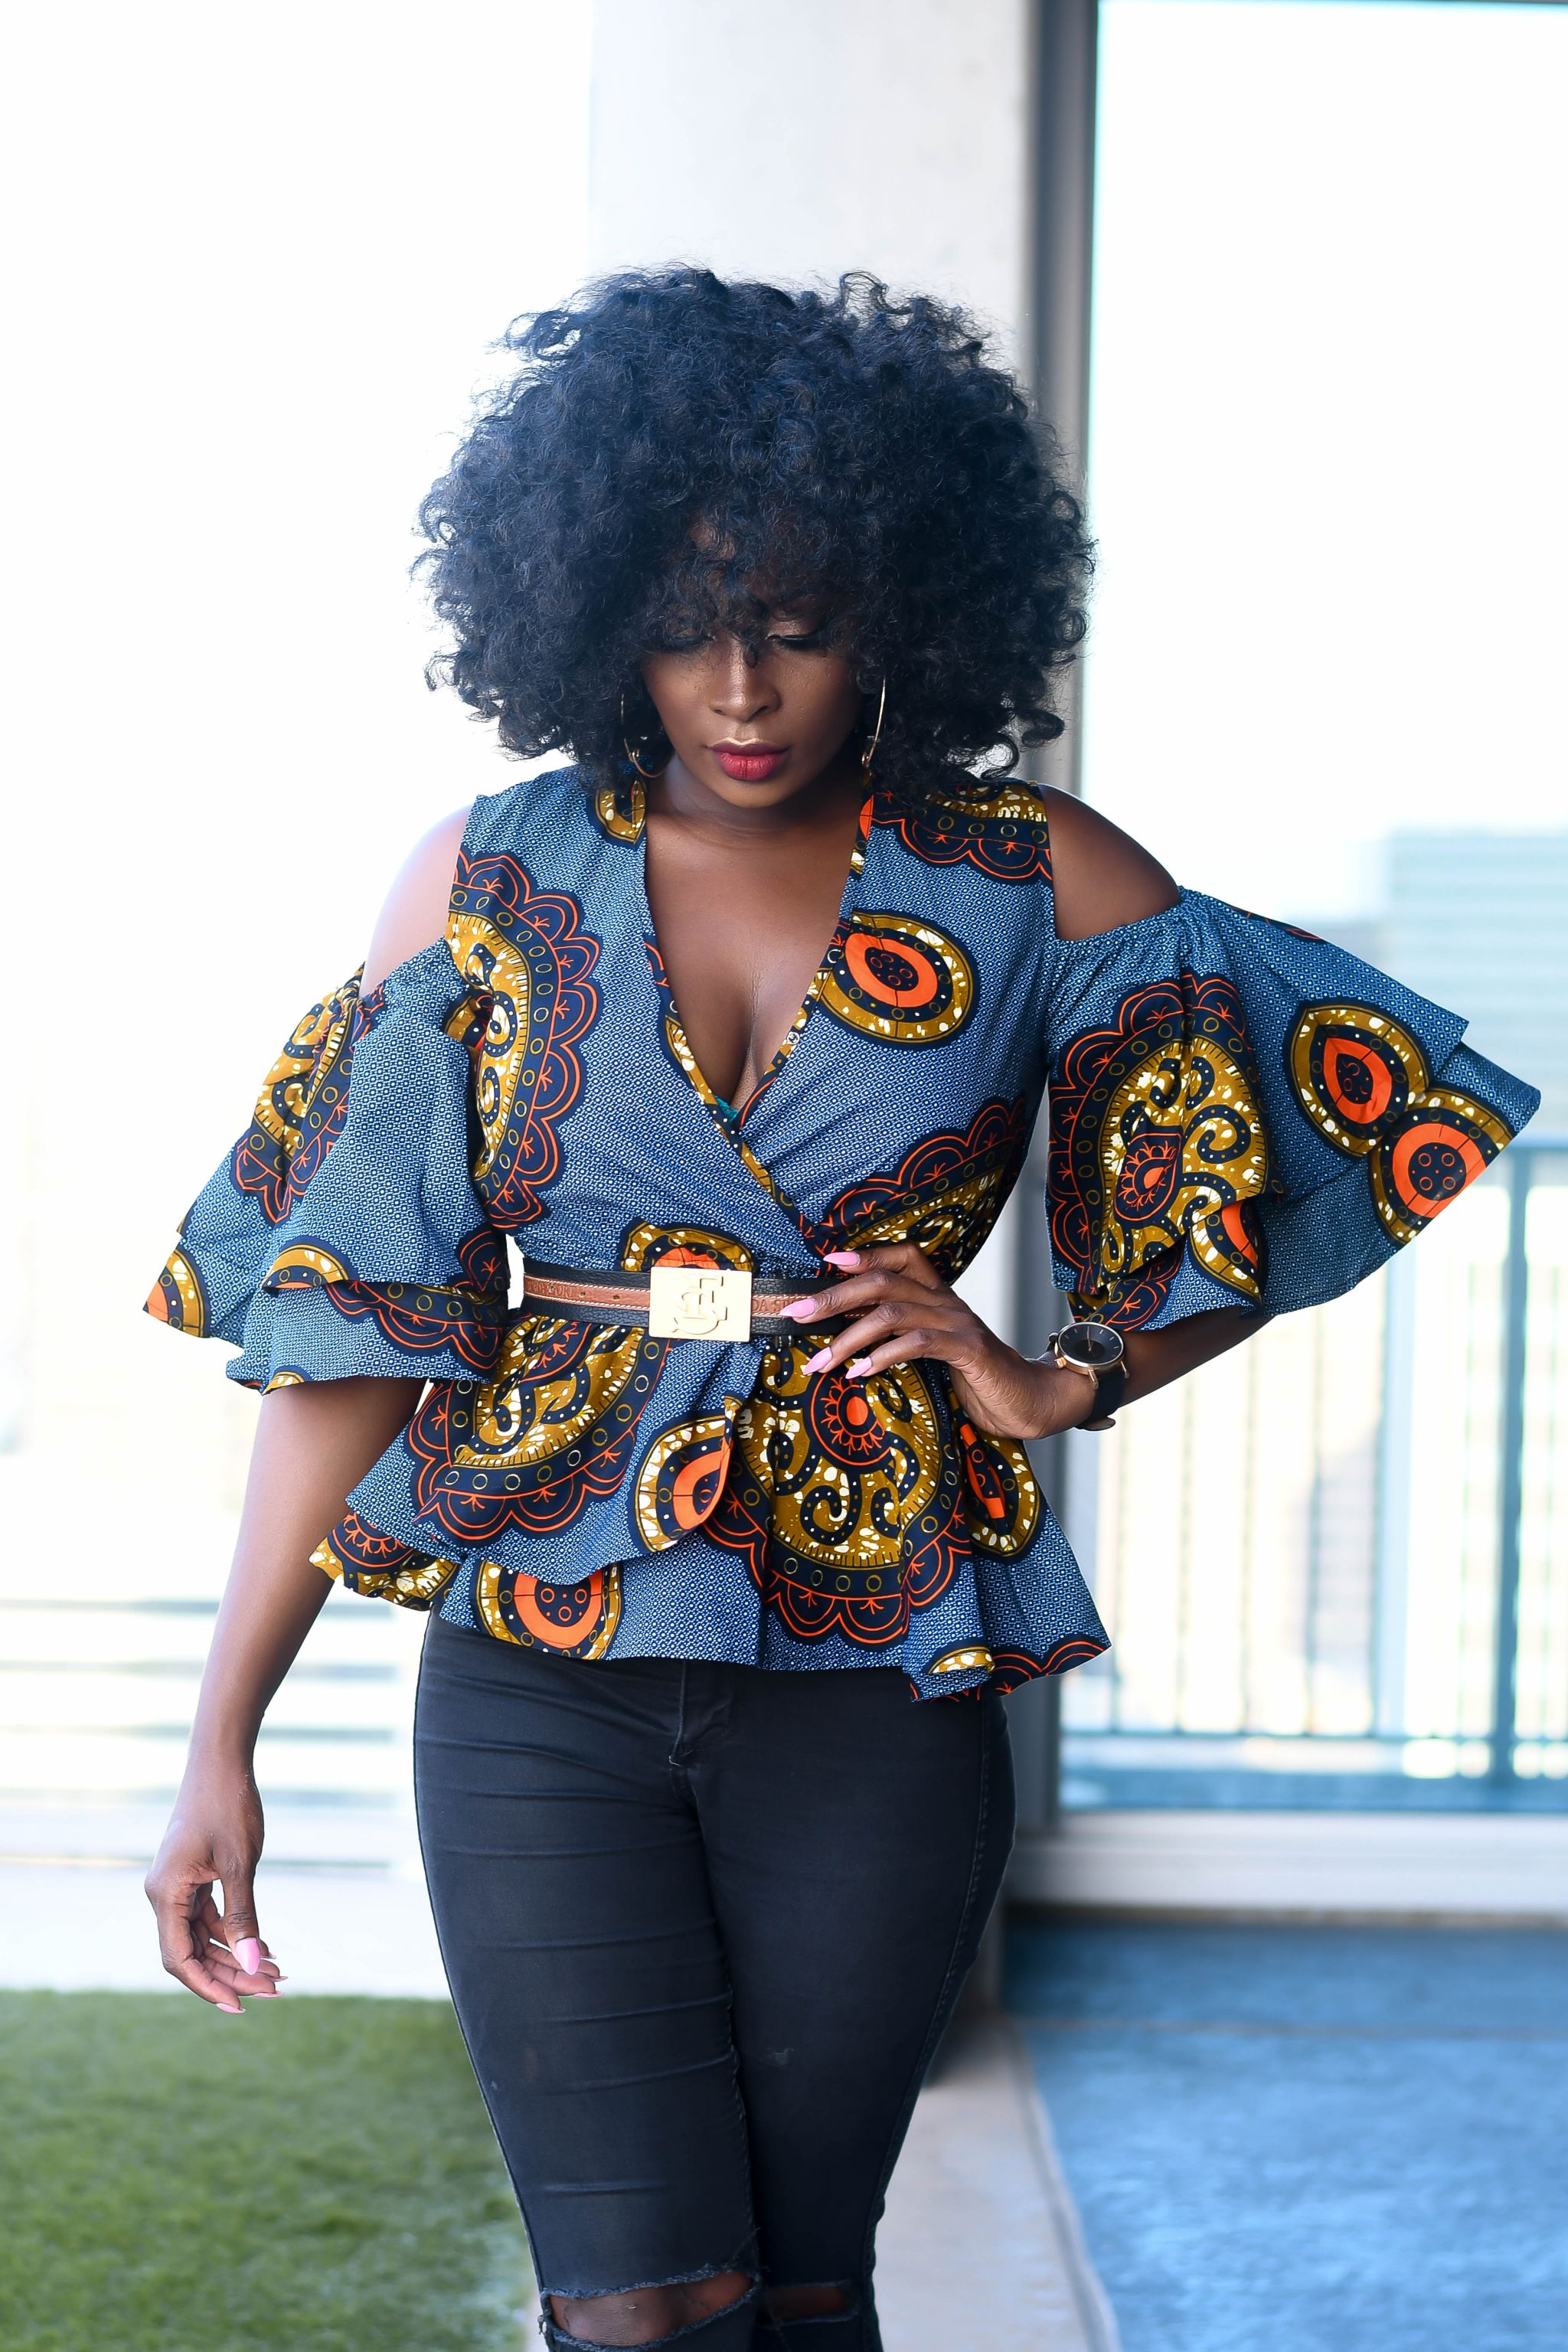 Top 9 Fashion Magazine Covers September 2013 Fashioncover: Adaora*** Ankara Peplum Top With Double Frills -Grey